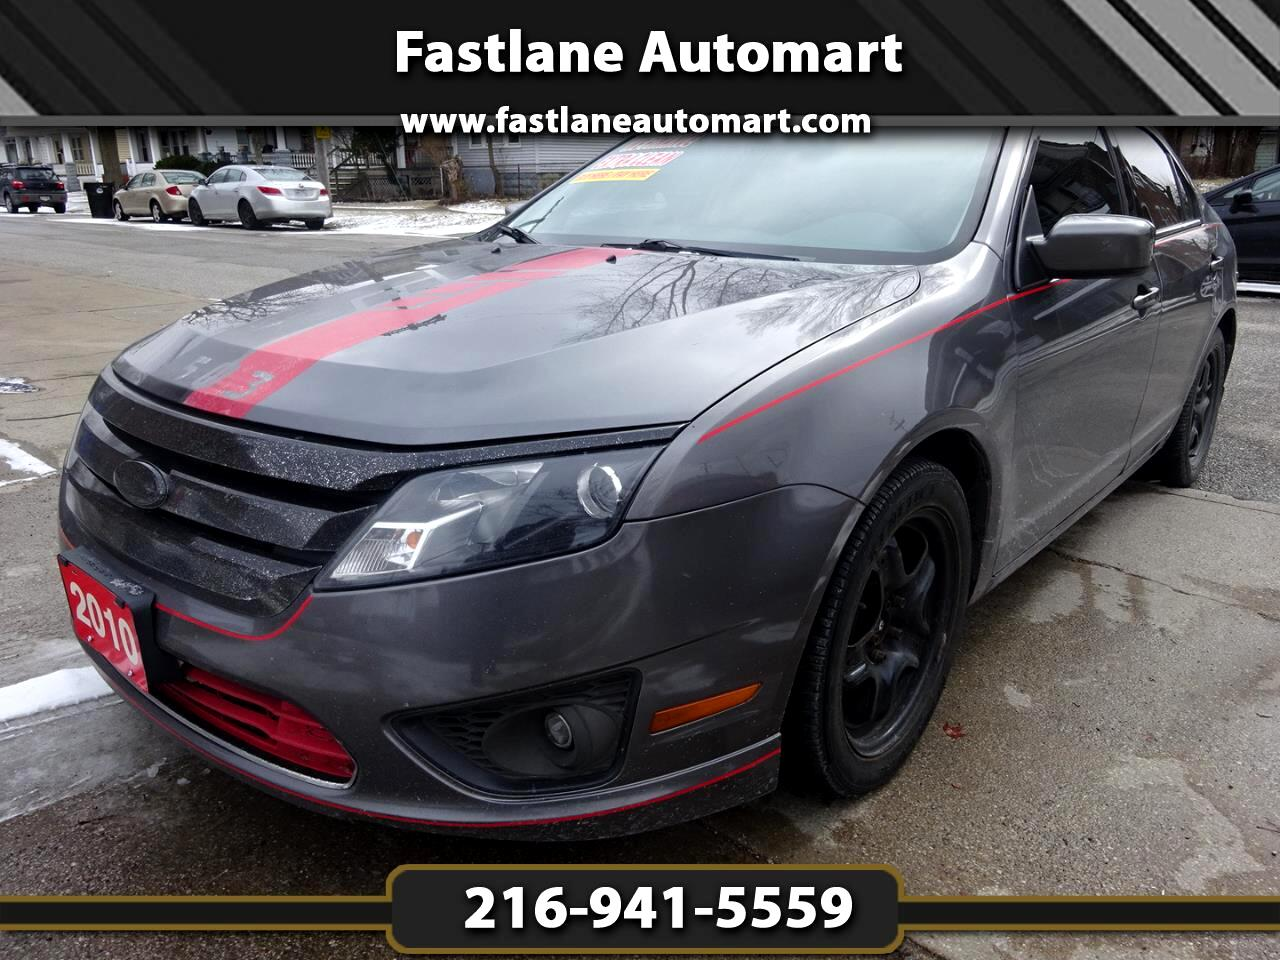 Ford Fusion 4dr Sdn V6 SE FWD 2009